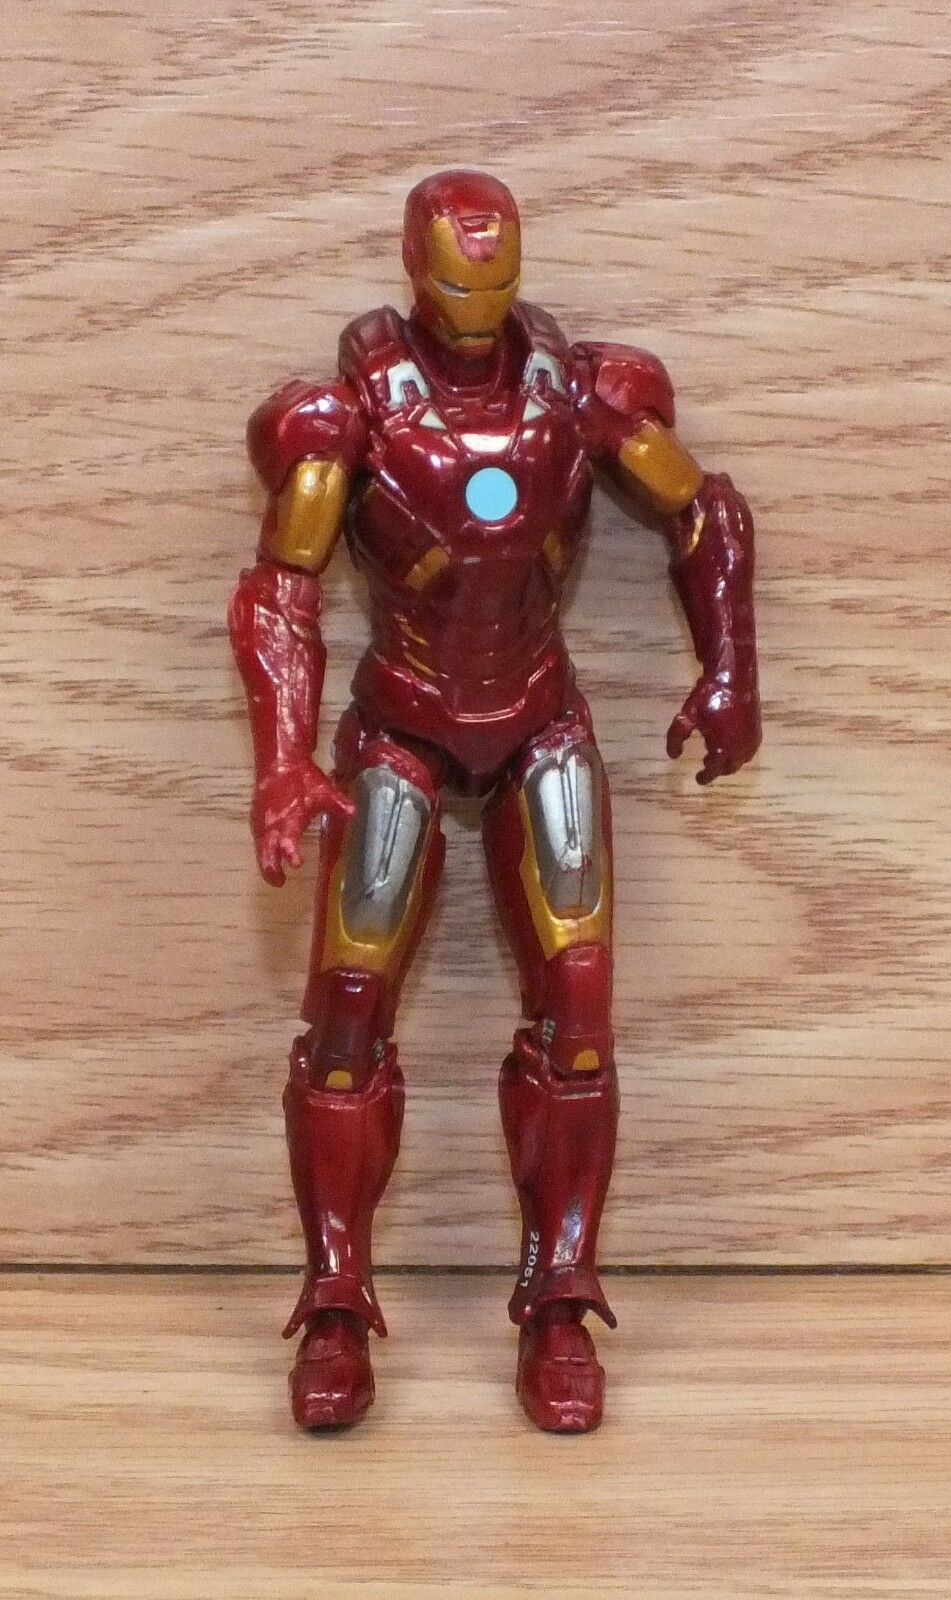 Genuine Marvel 2012 Articulated Small 4  (inch) Avengers Iron Man Action Figure